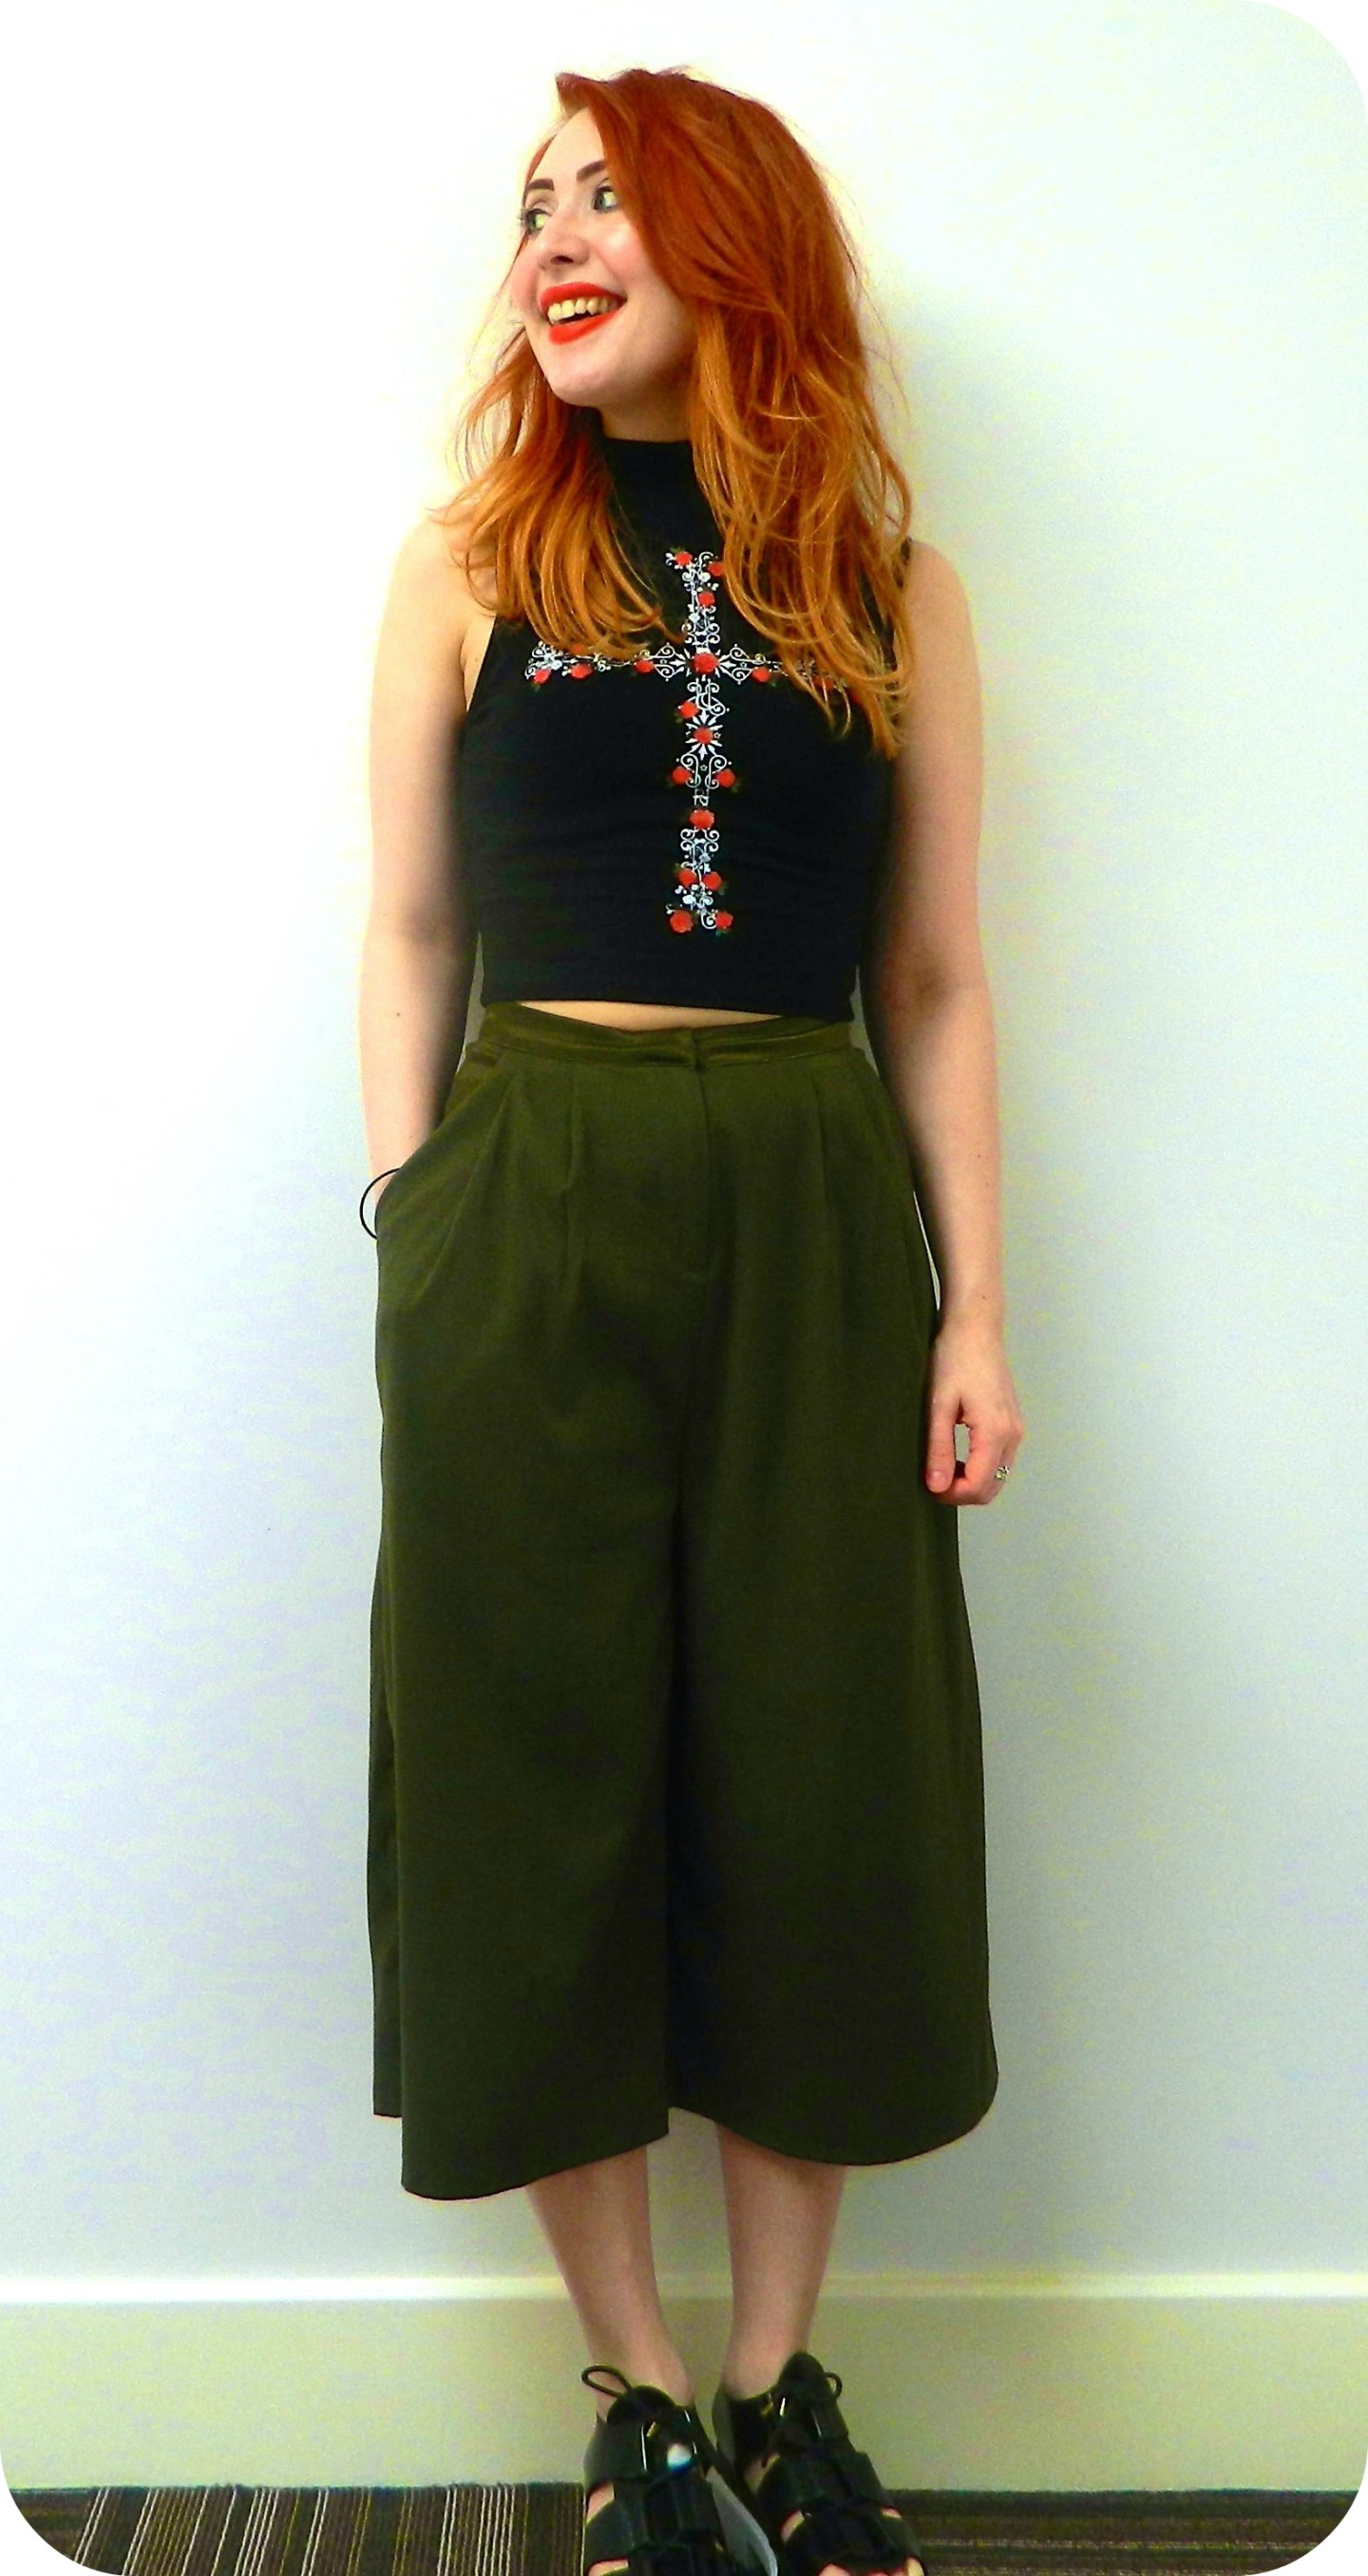 Culotte What You Want: I love this look!